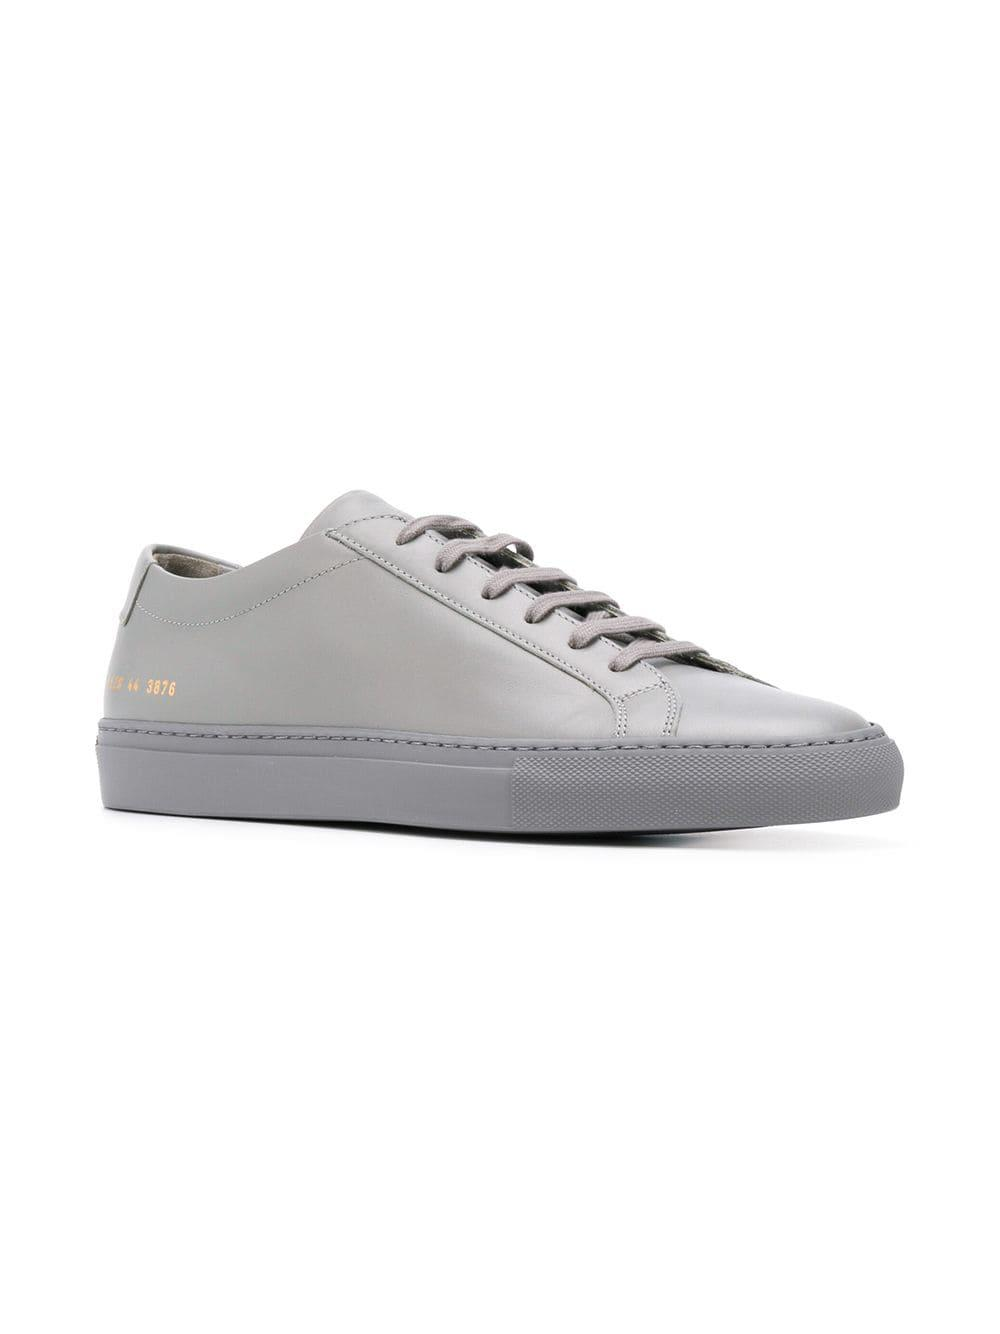 49a7efbc2b8f5 Common Projects - Gray Achilles Low Sneakers for Men - Lyst. View fullscreen